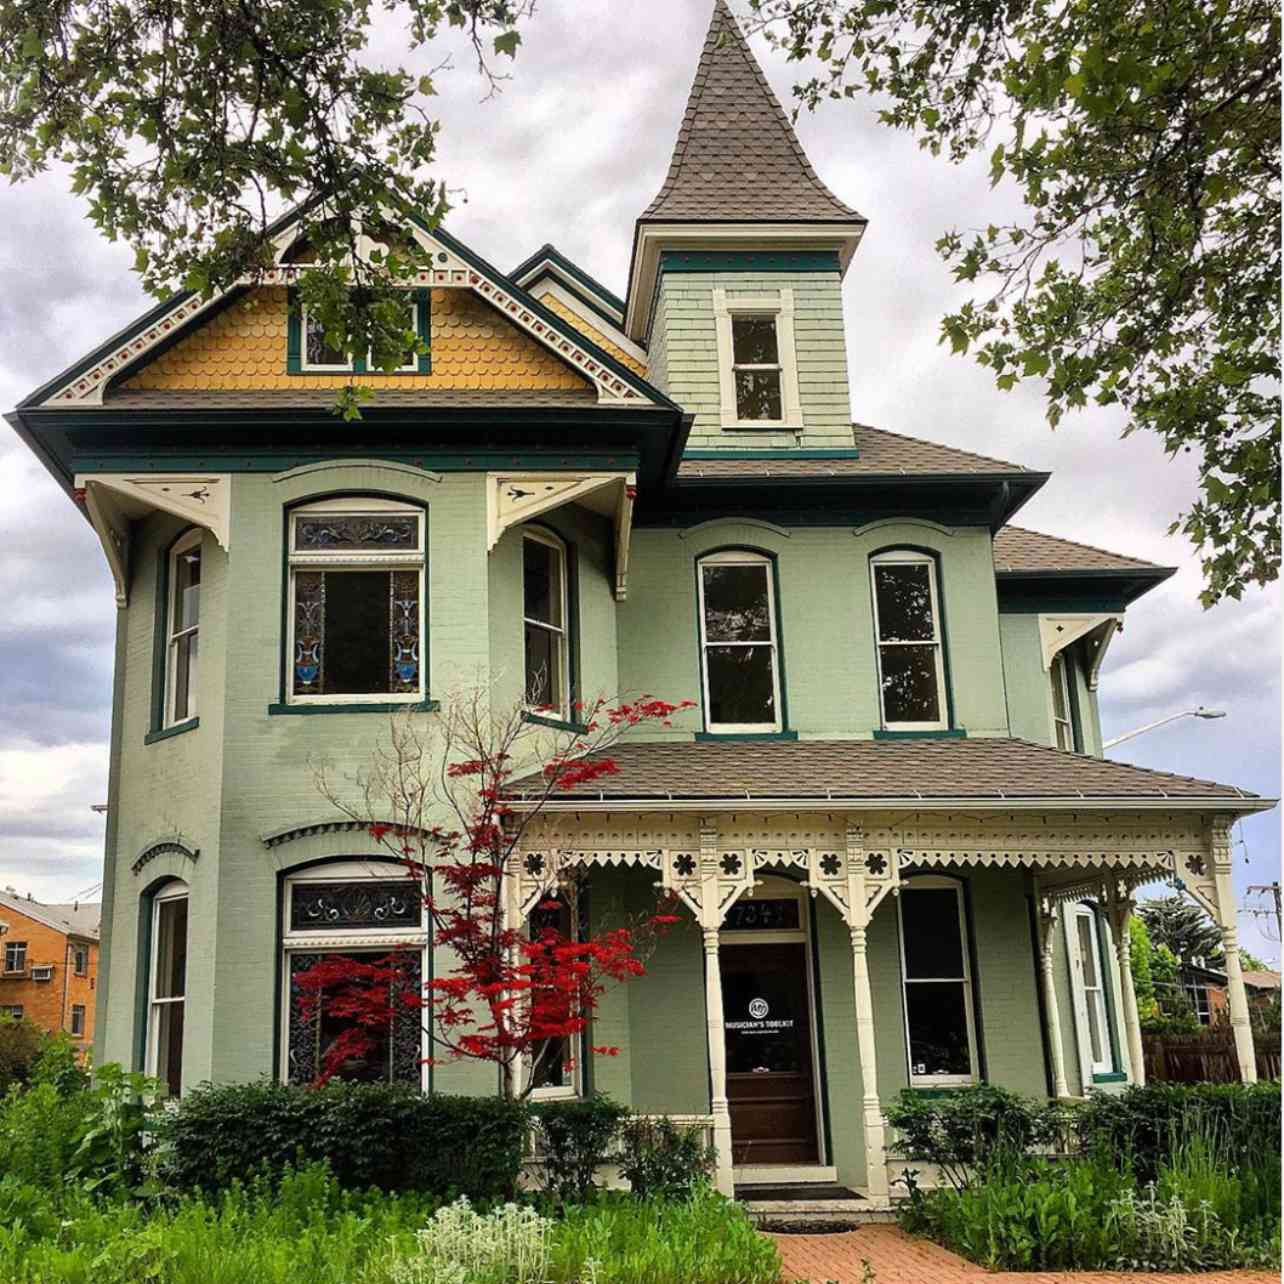 Turreted Victorian home